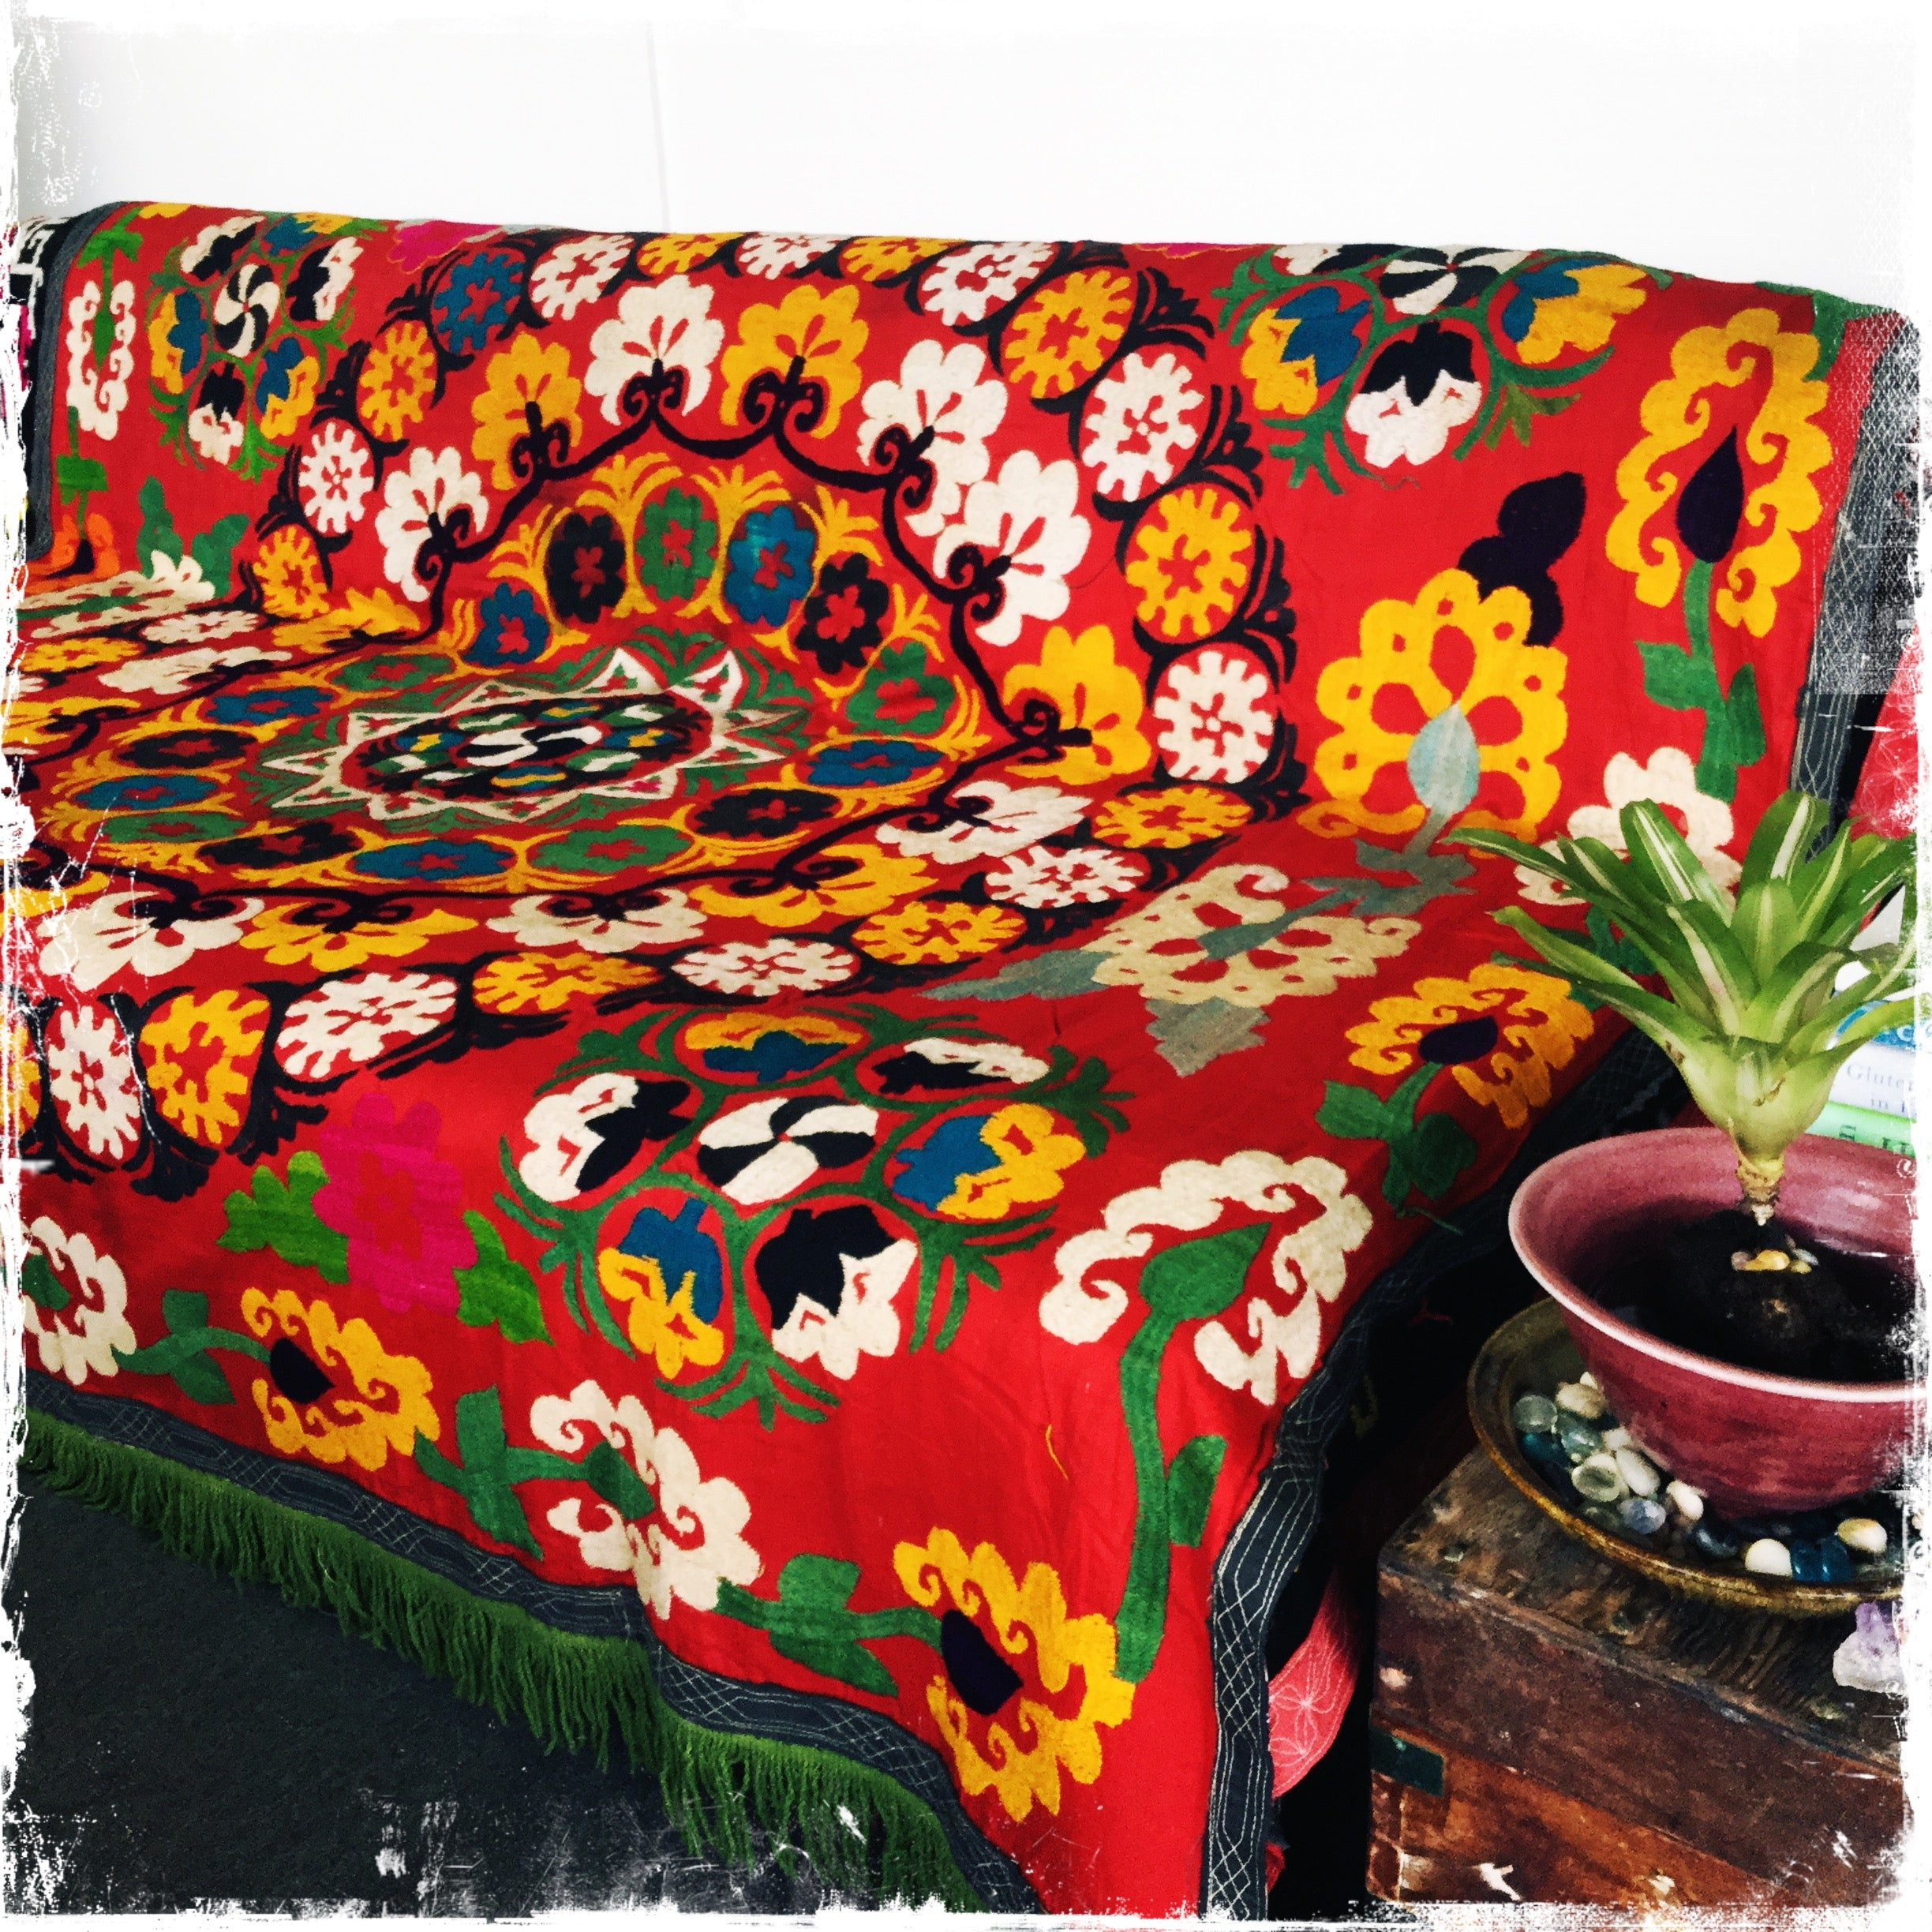 SOLD! Suzani Vintage Hand-Embroidered Textiles for Boho-Chic Decor - Honorooroo Lifestyle